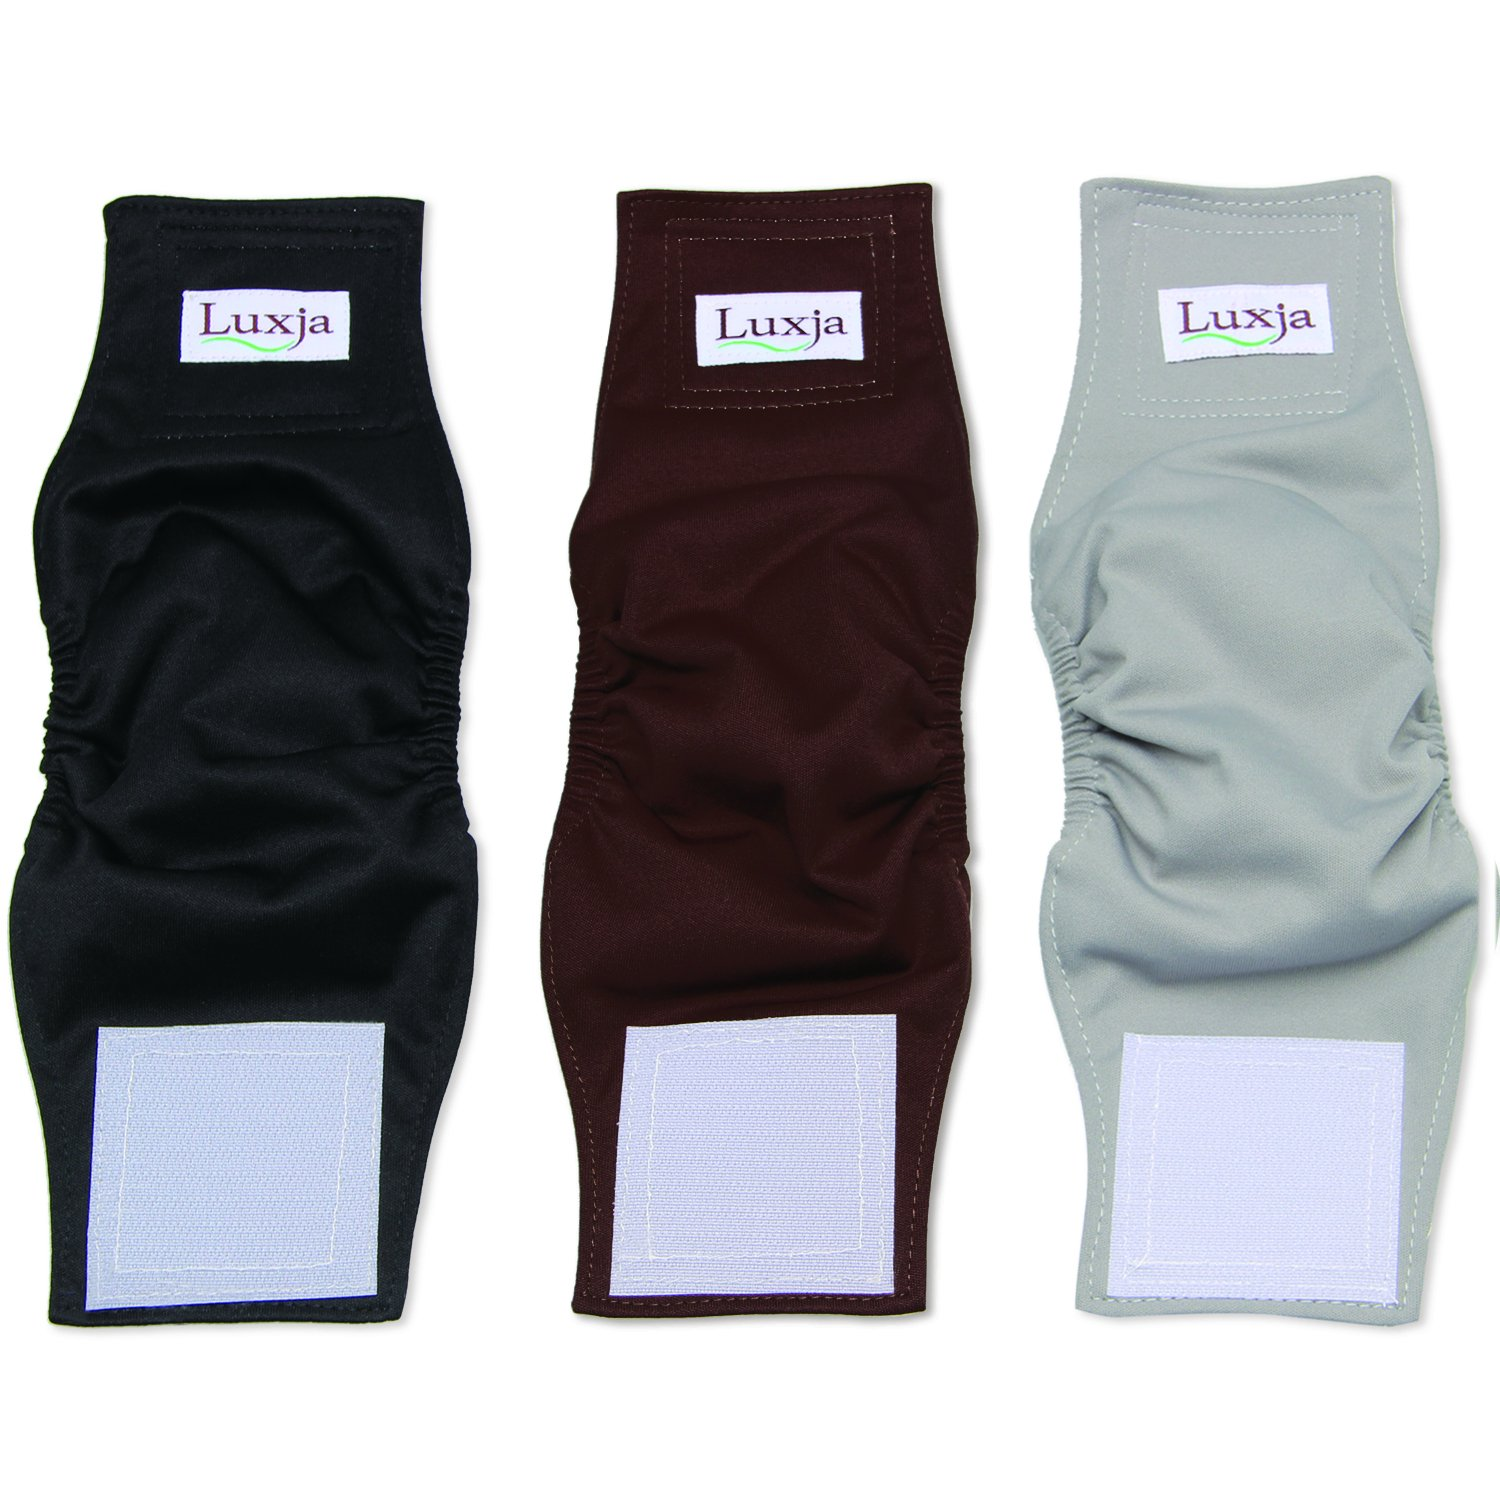 LUXJA Reusable Male Dog Diapers (Pack of 3), Washable Puppy Belly Band, Black+Gray+Coffee(Small)